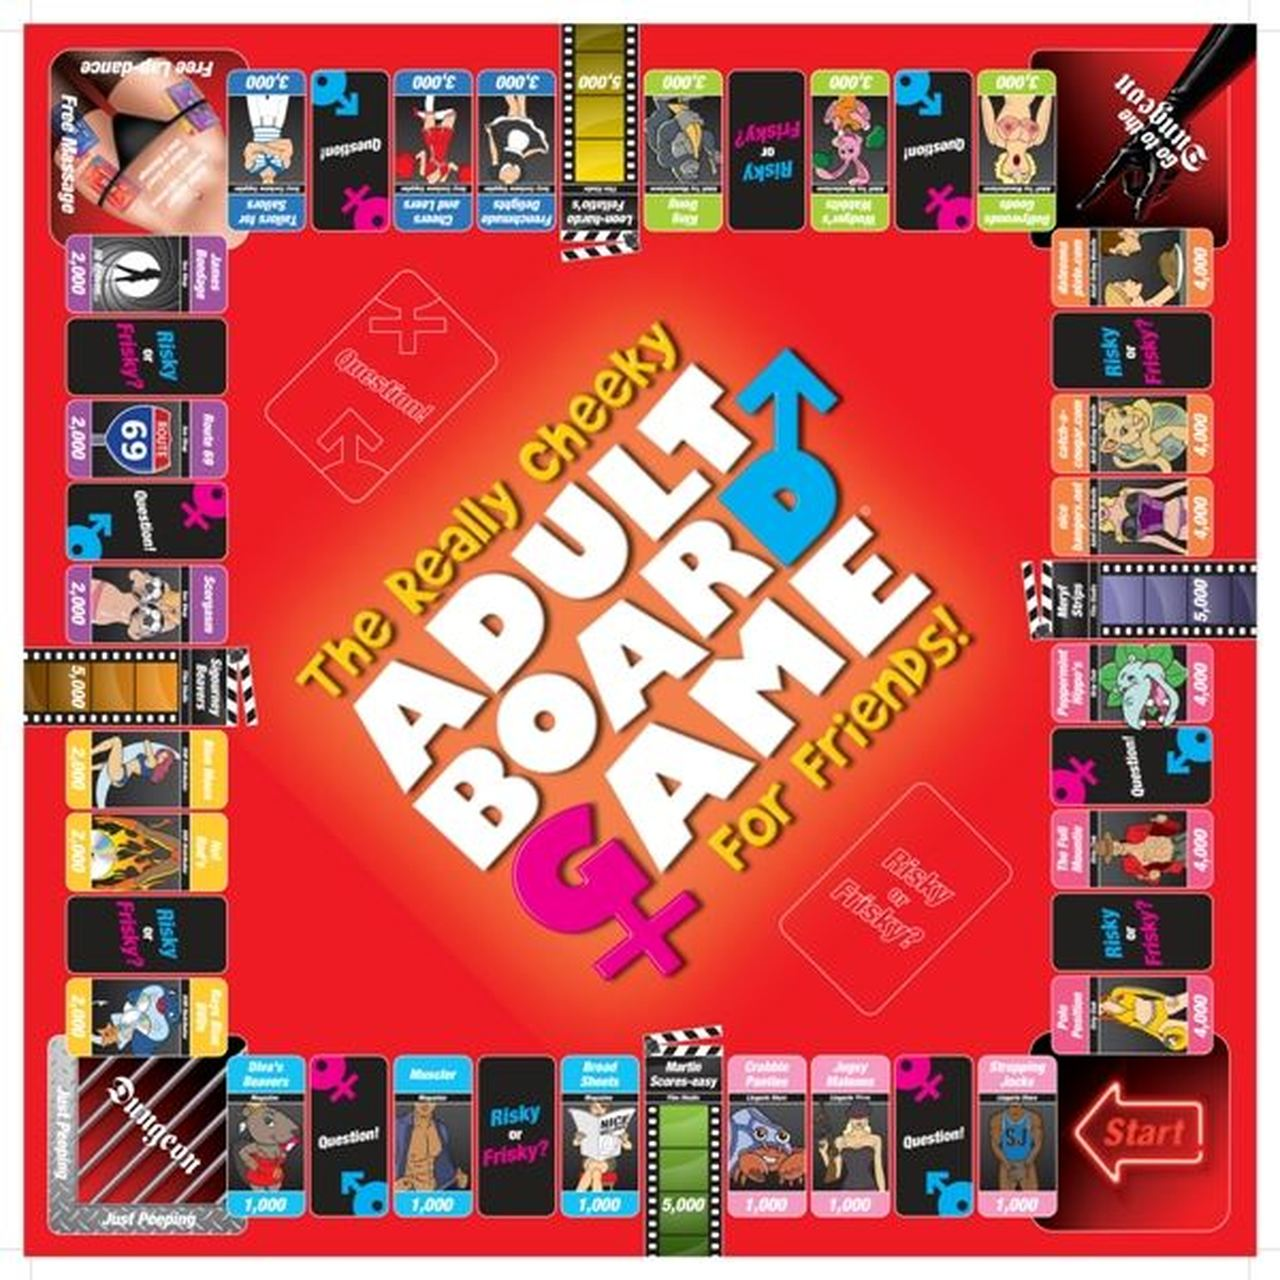 Creative Conceptions A Really Cheeky Adult Board Game for Friends 5037353000888 Game Board Detail